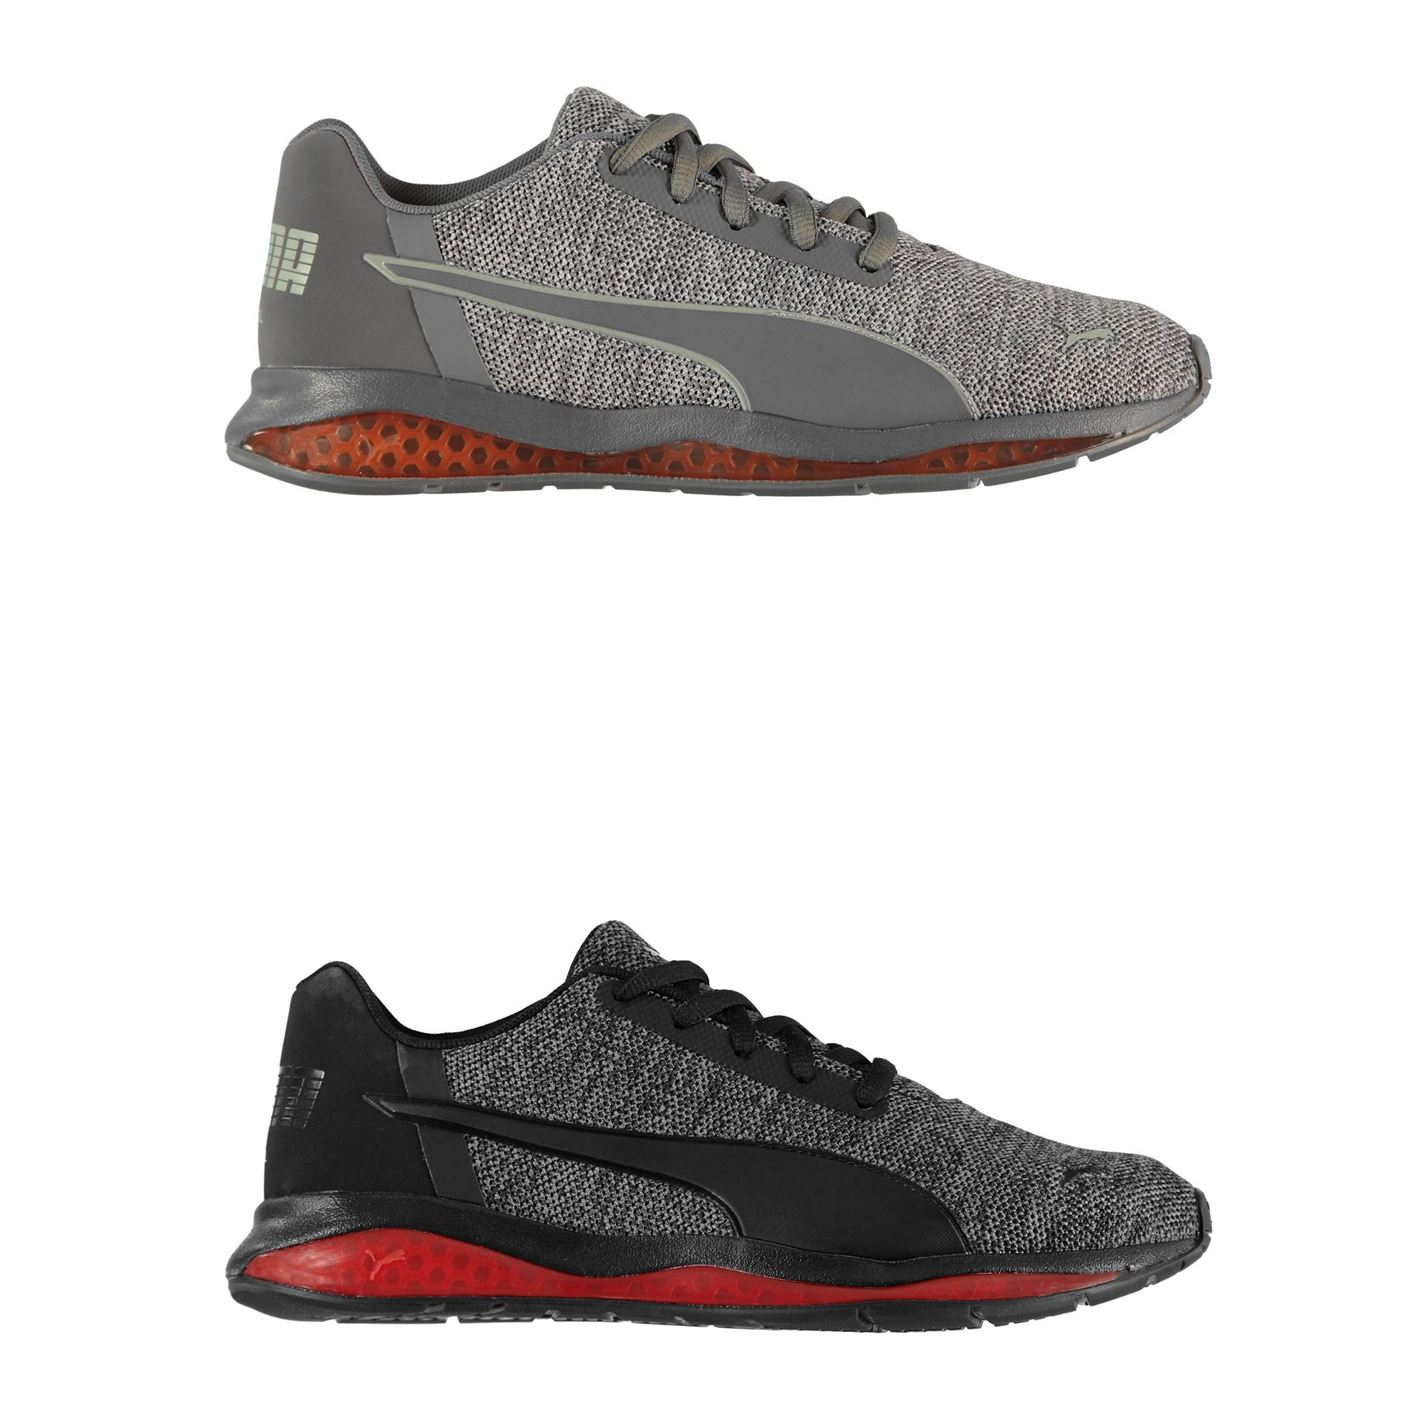 Details about Puma IGNITE Limitless 2 Unrest Mens Running Shoes Trainers Footwear Sneakers